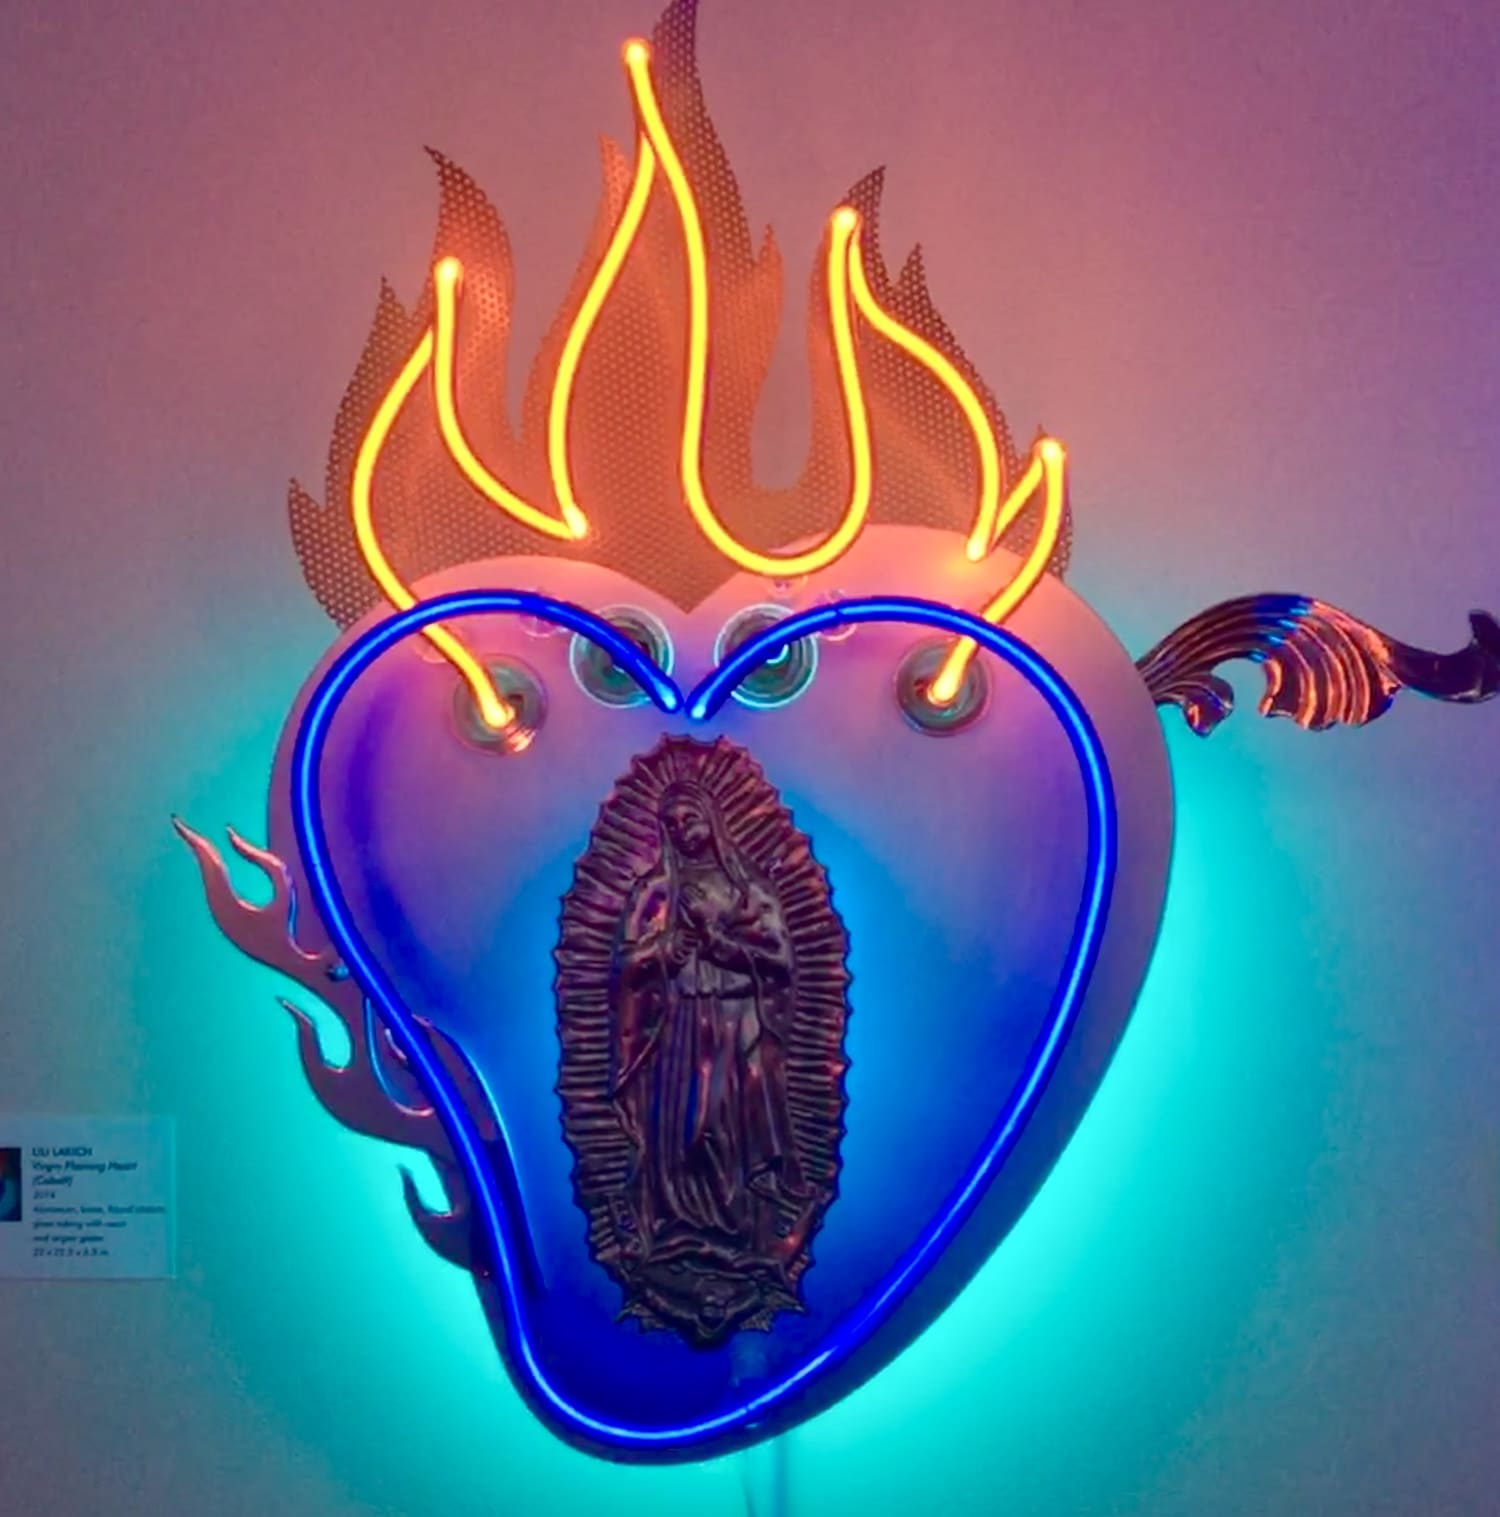 Trap Street | Darkness Comes Alive | Immersive neon art exhibit